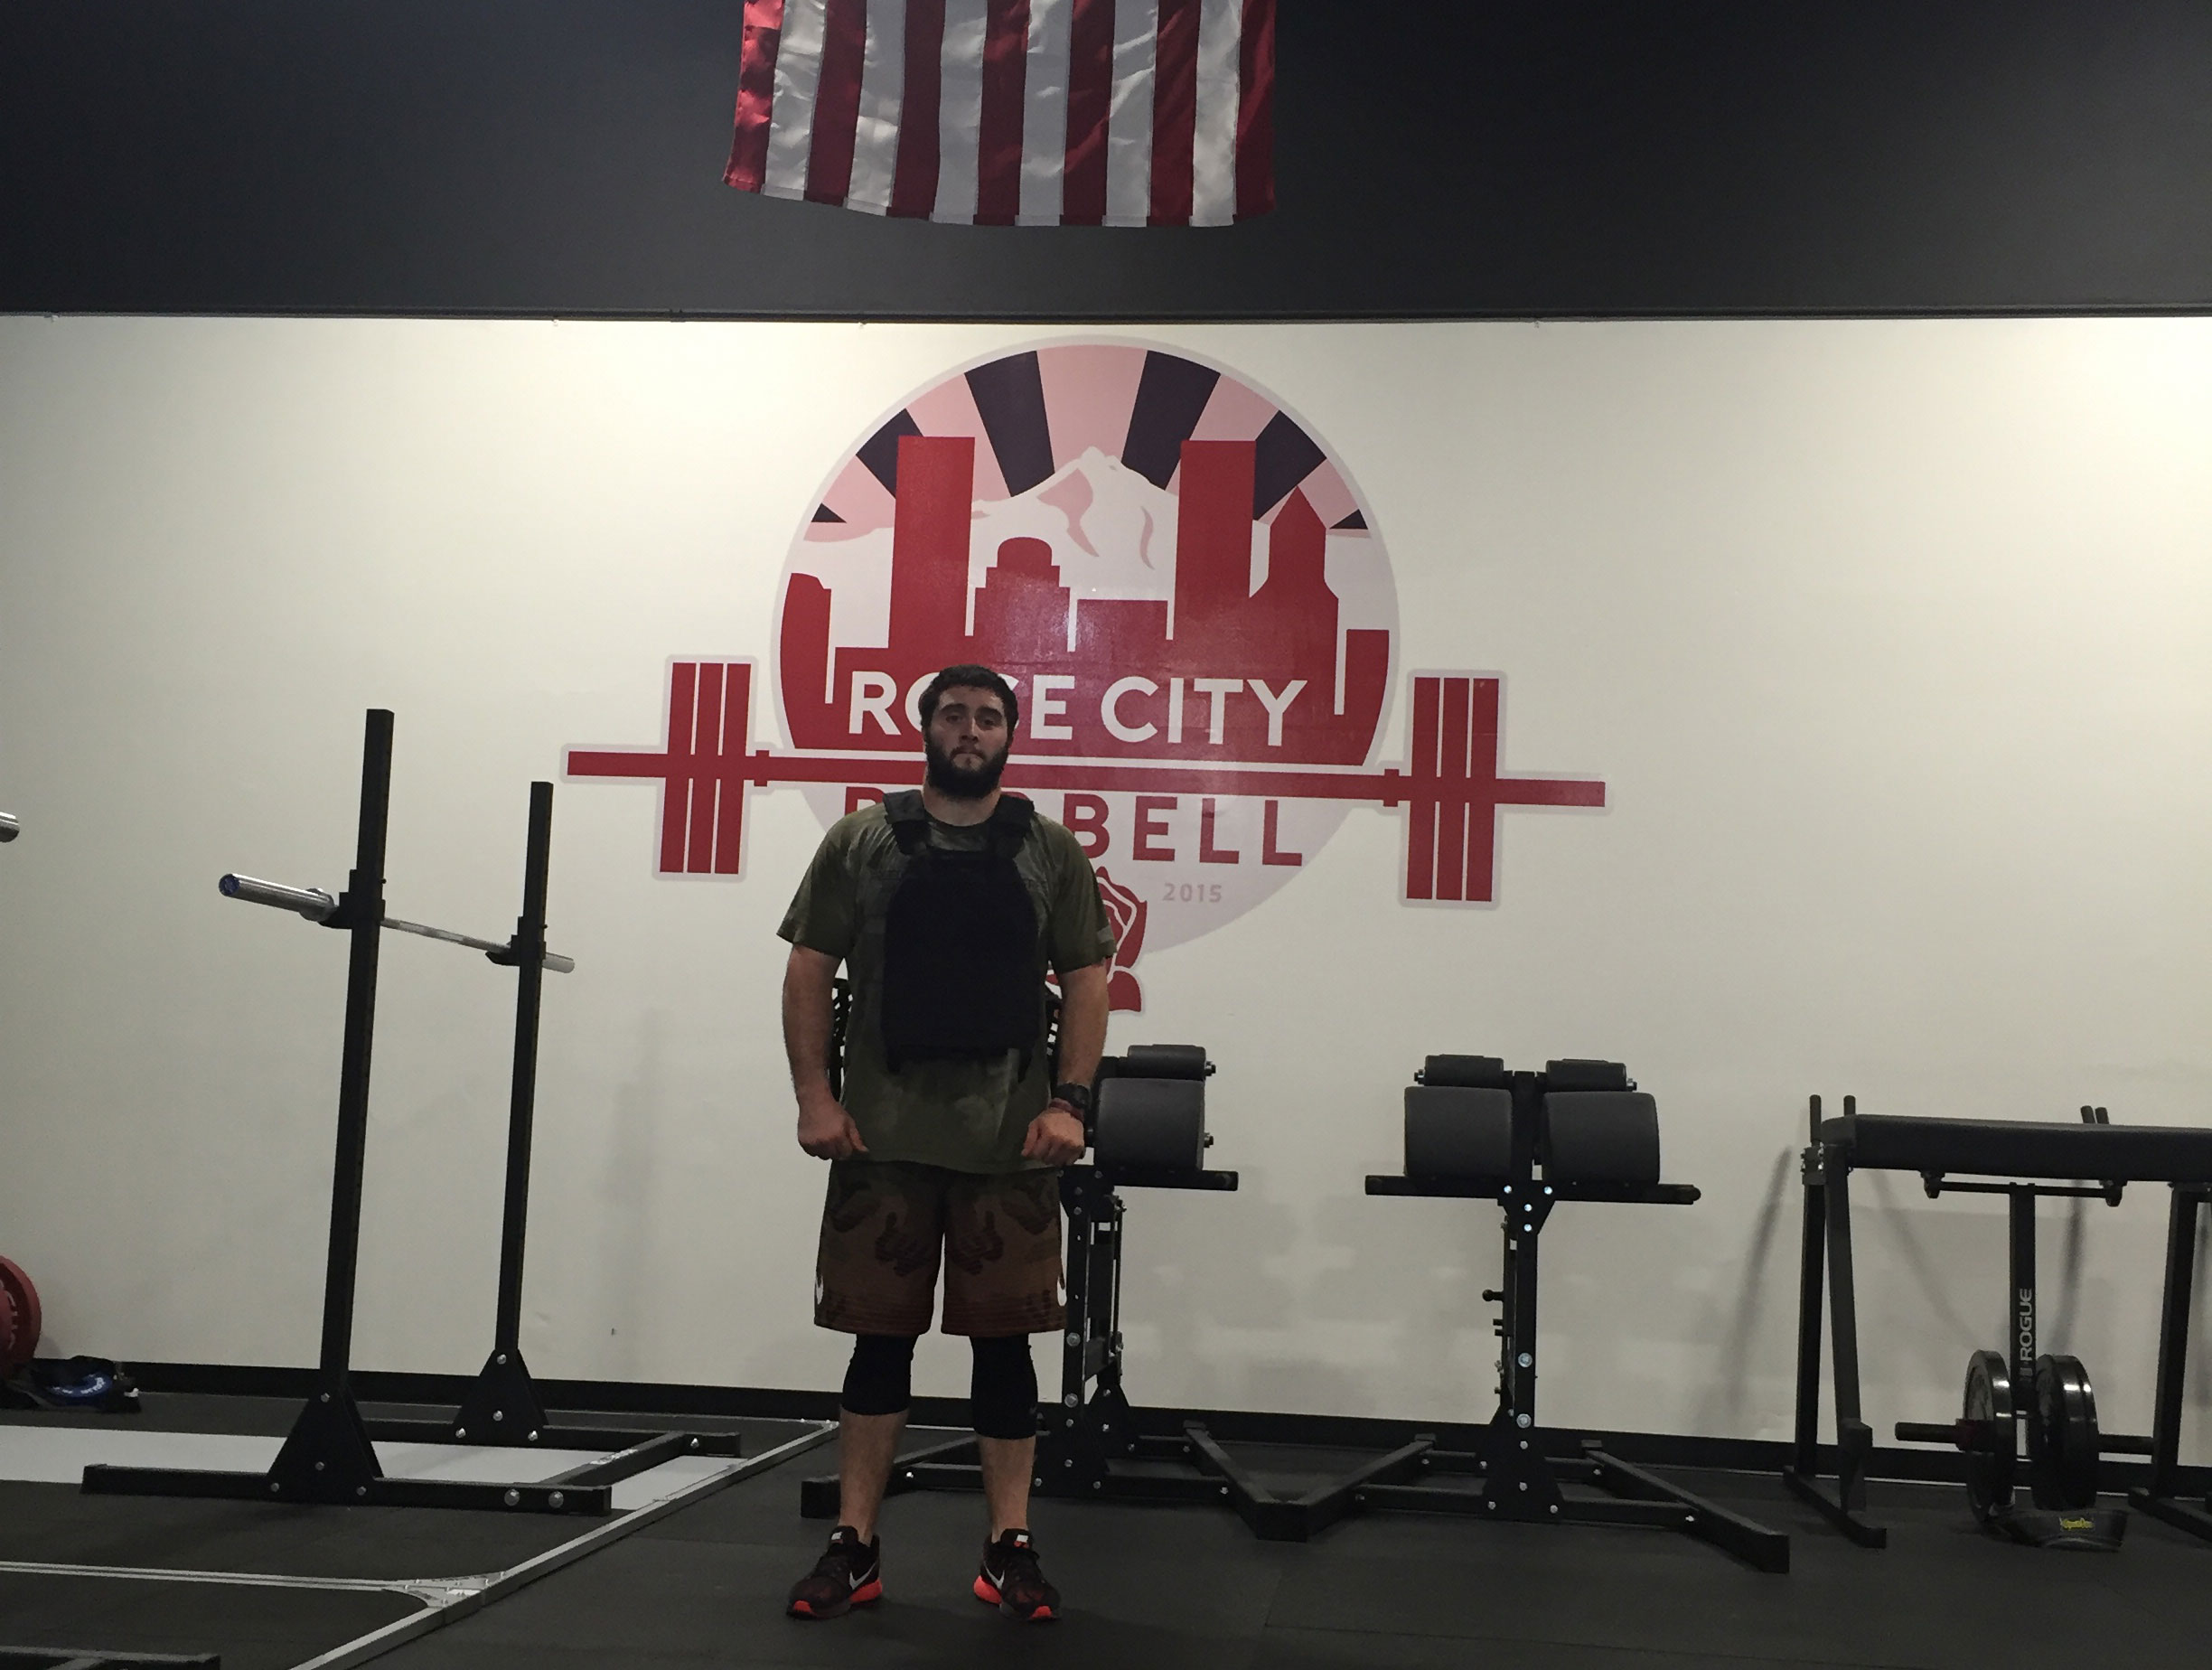 Photo taken at our CrossFit Tigard facility. Devin Wells - October Athlete Of The Month | Rose City Barbell